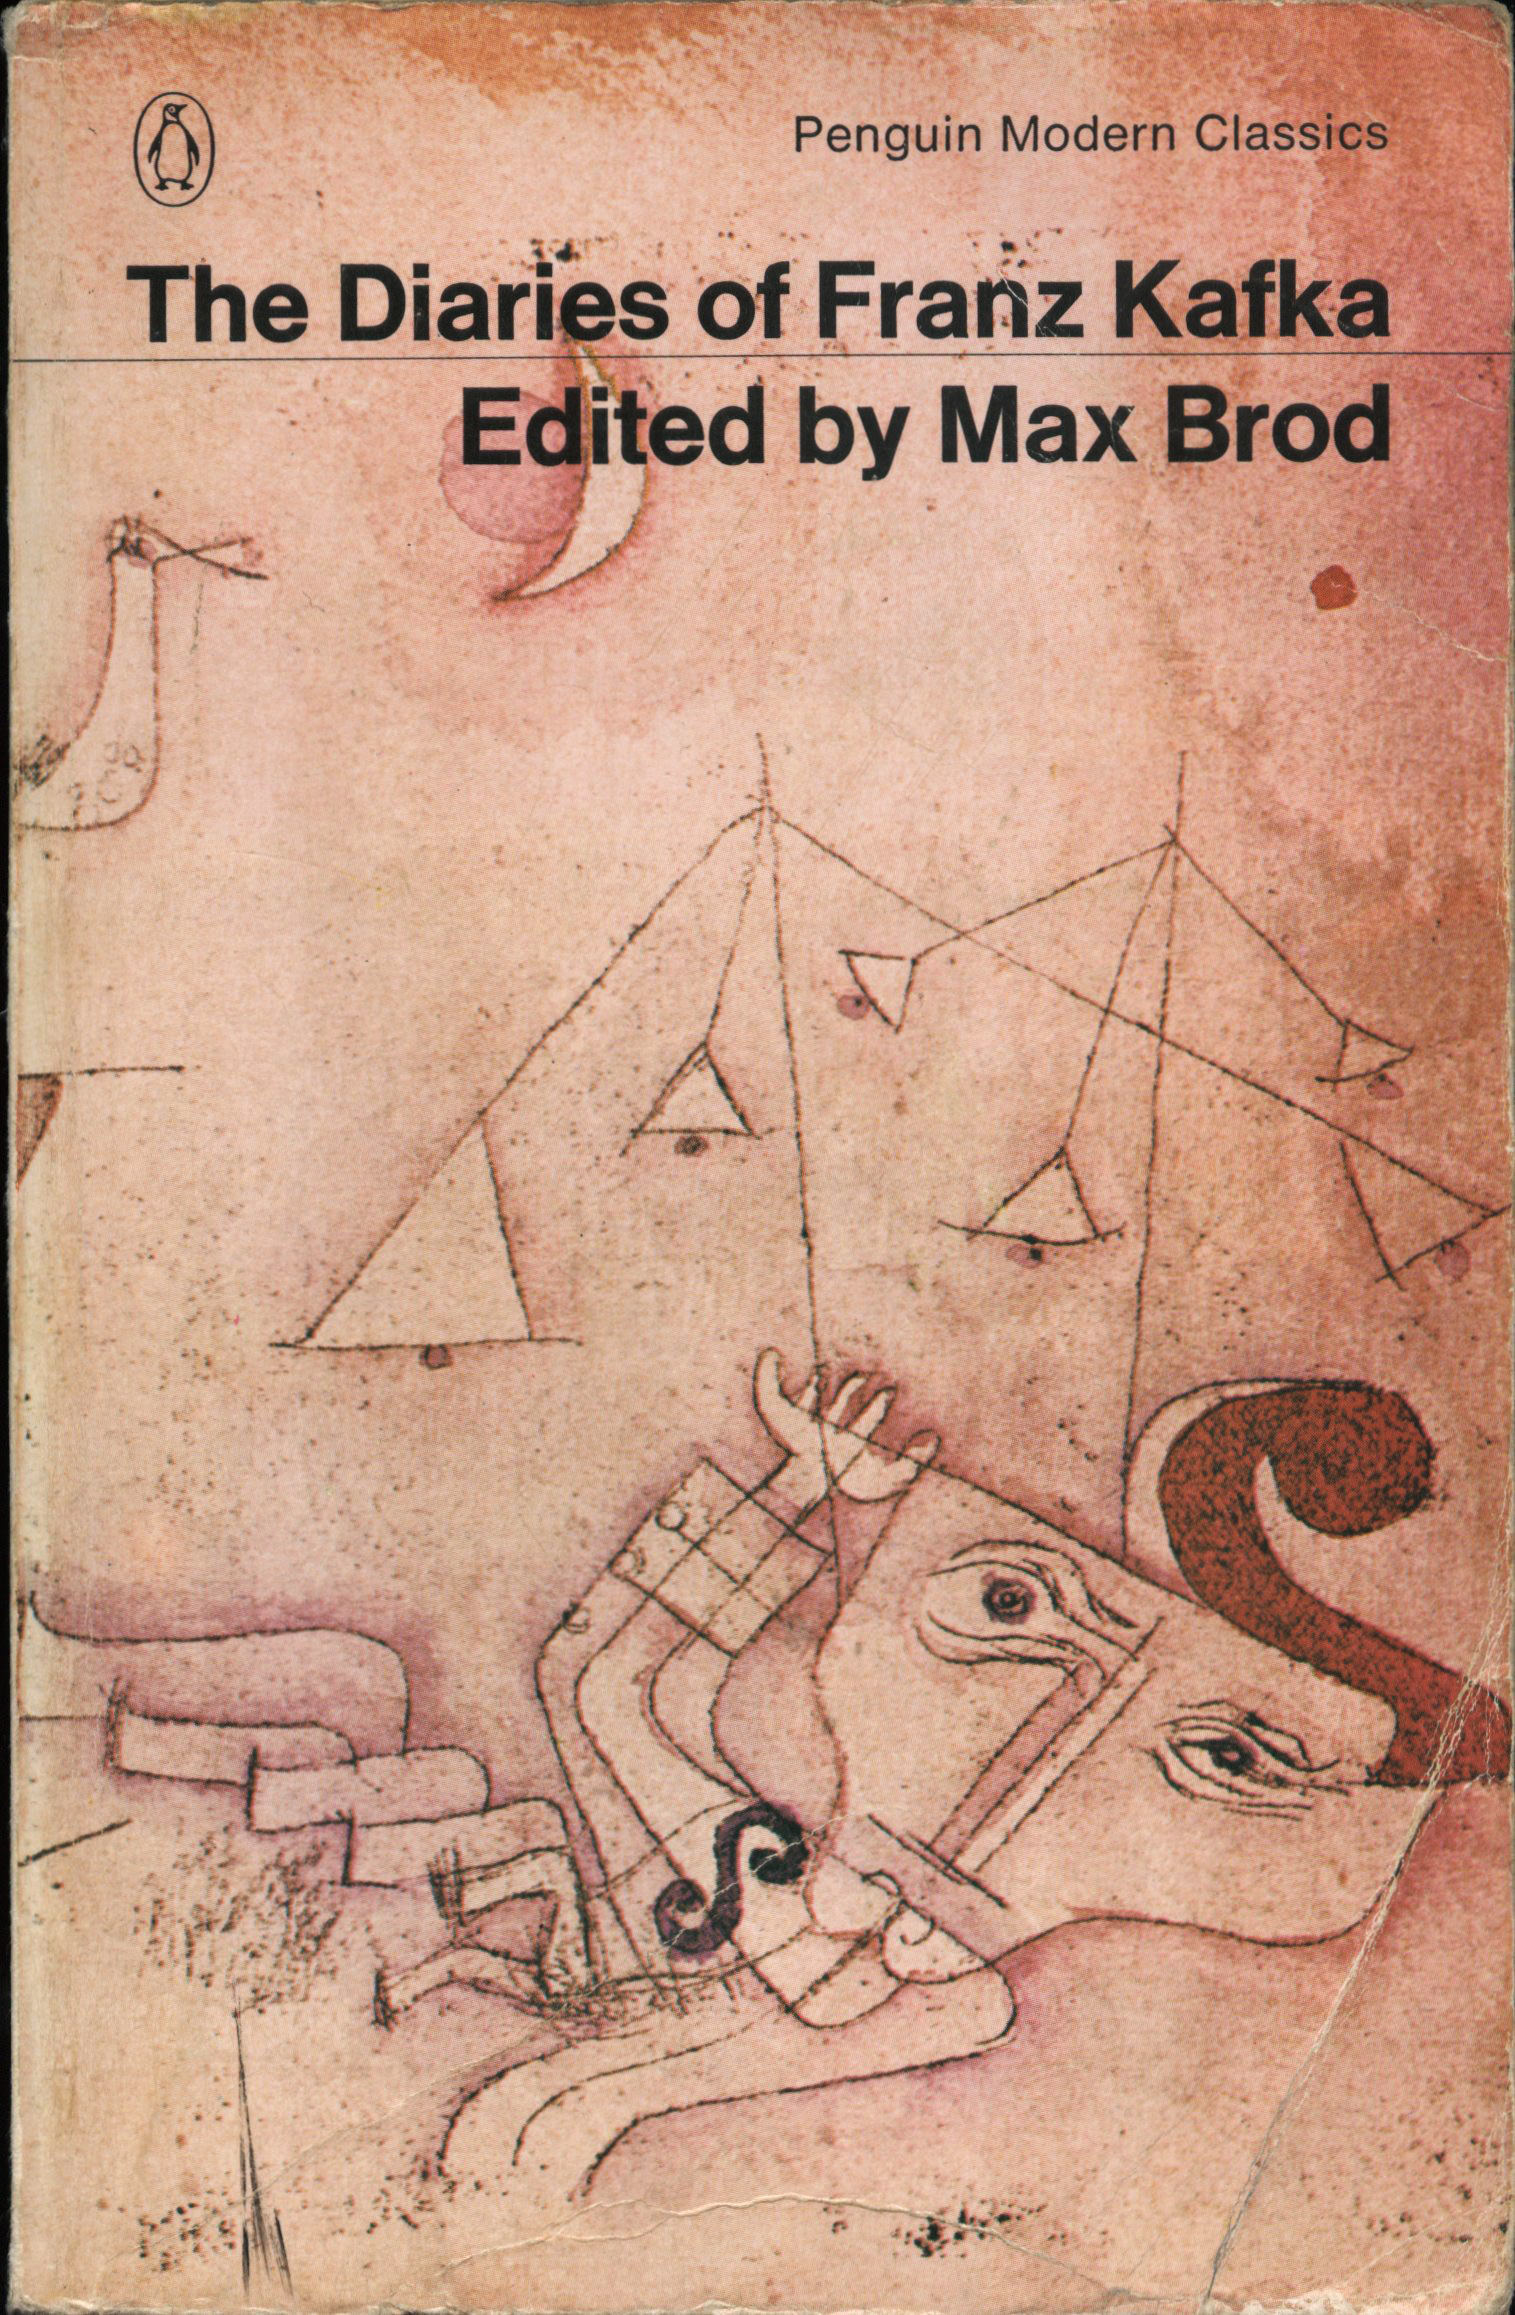 Kafka's diaries, 1964 edition. Max Brod published the diaries in 1949